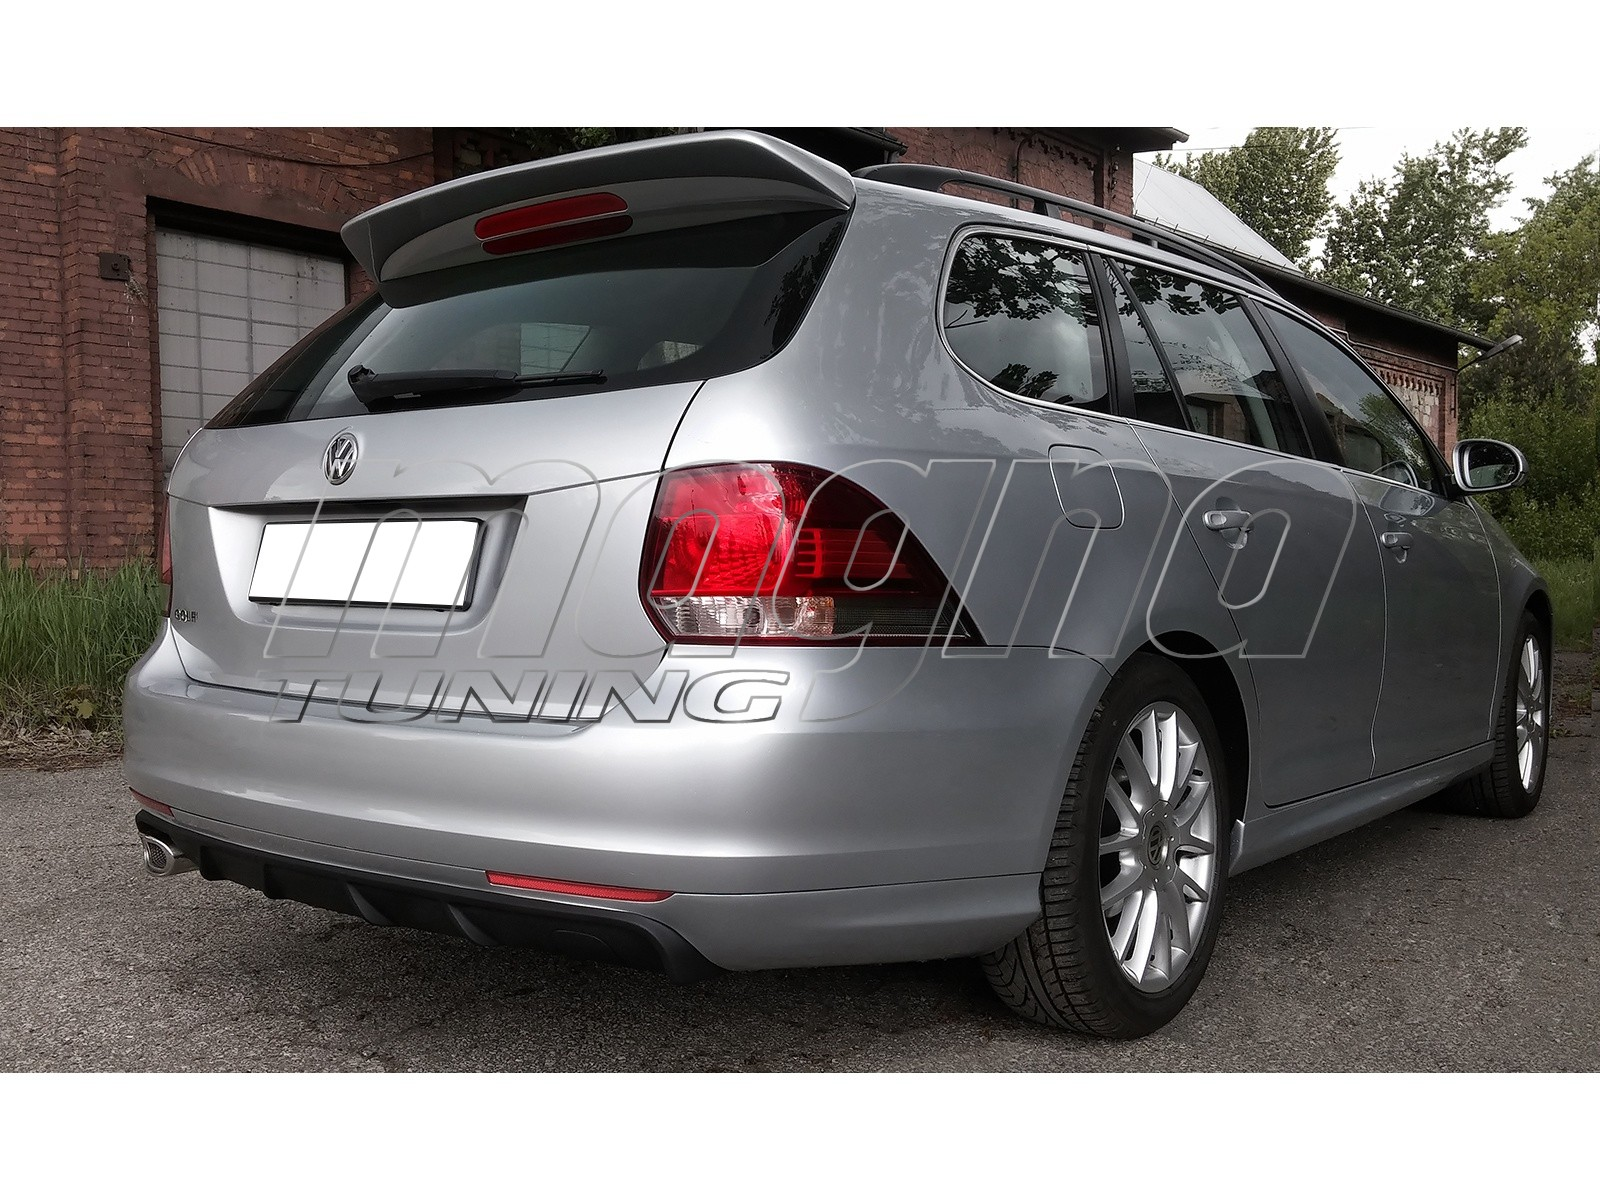 vw golf 6 variant saturn rear bumper extension. Black Bedroom Furniture Sets. Home Design Ideas